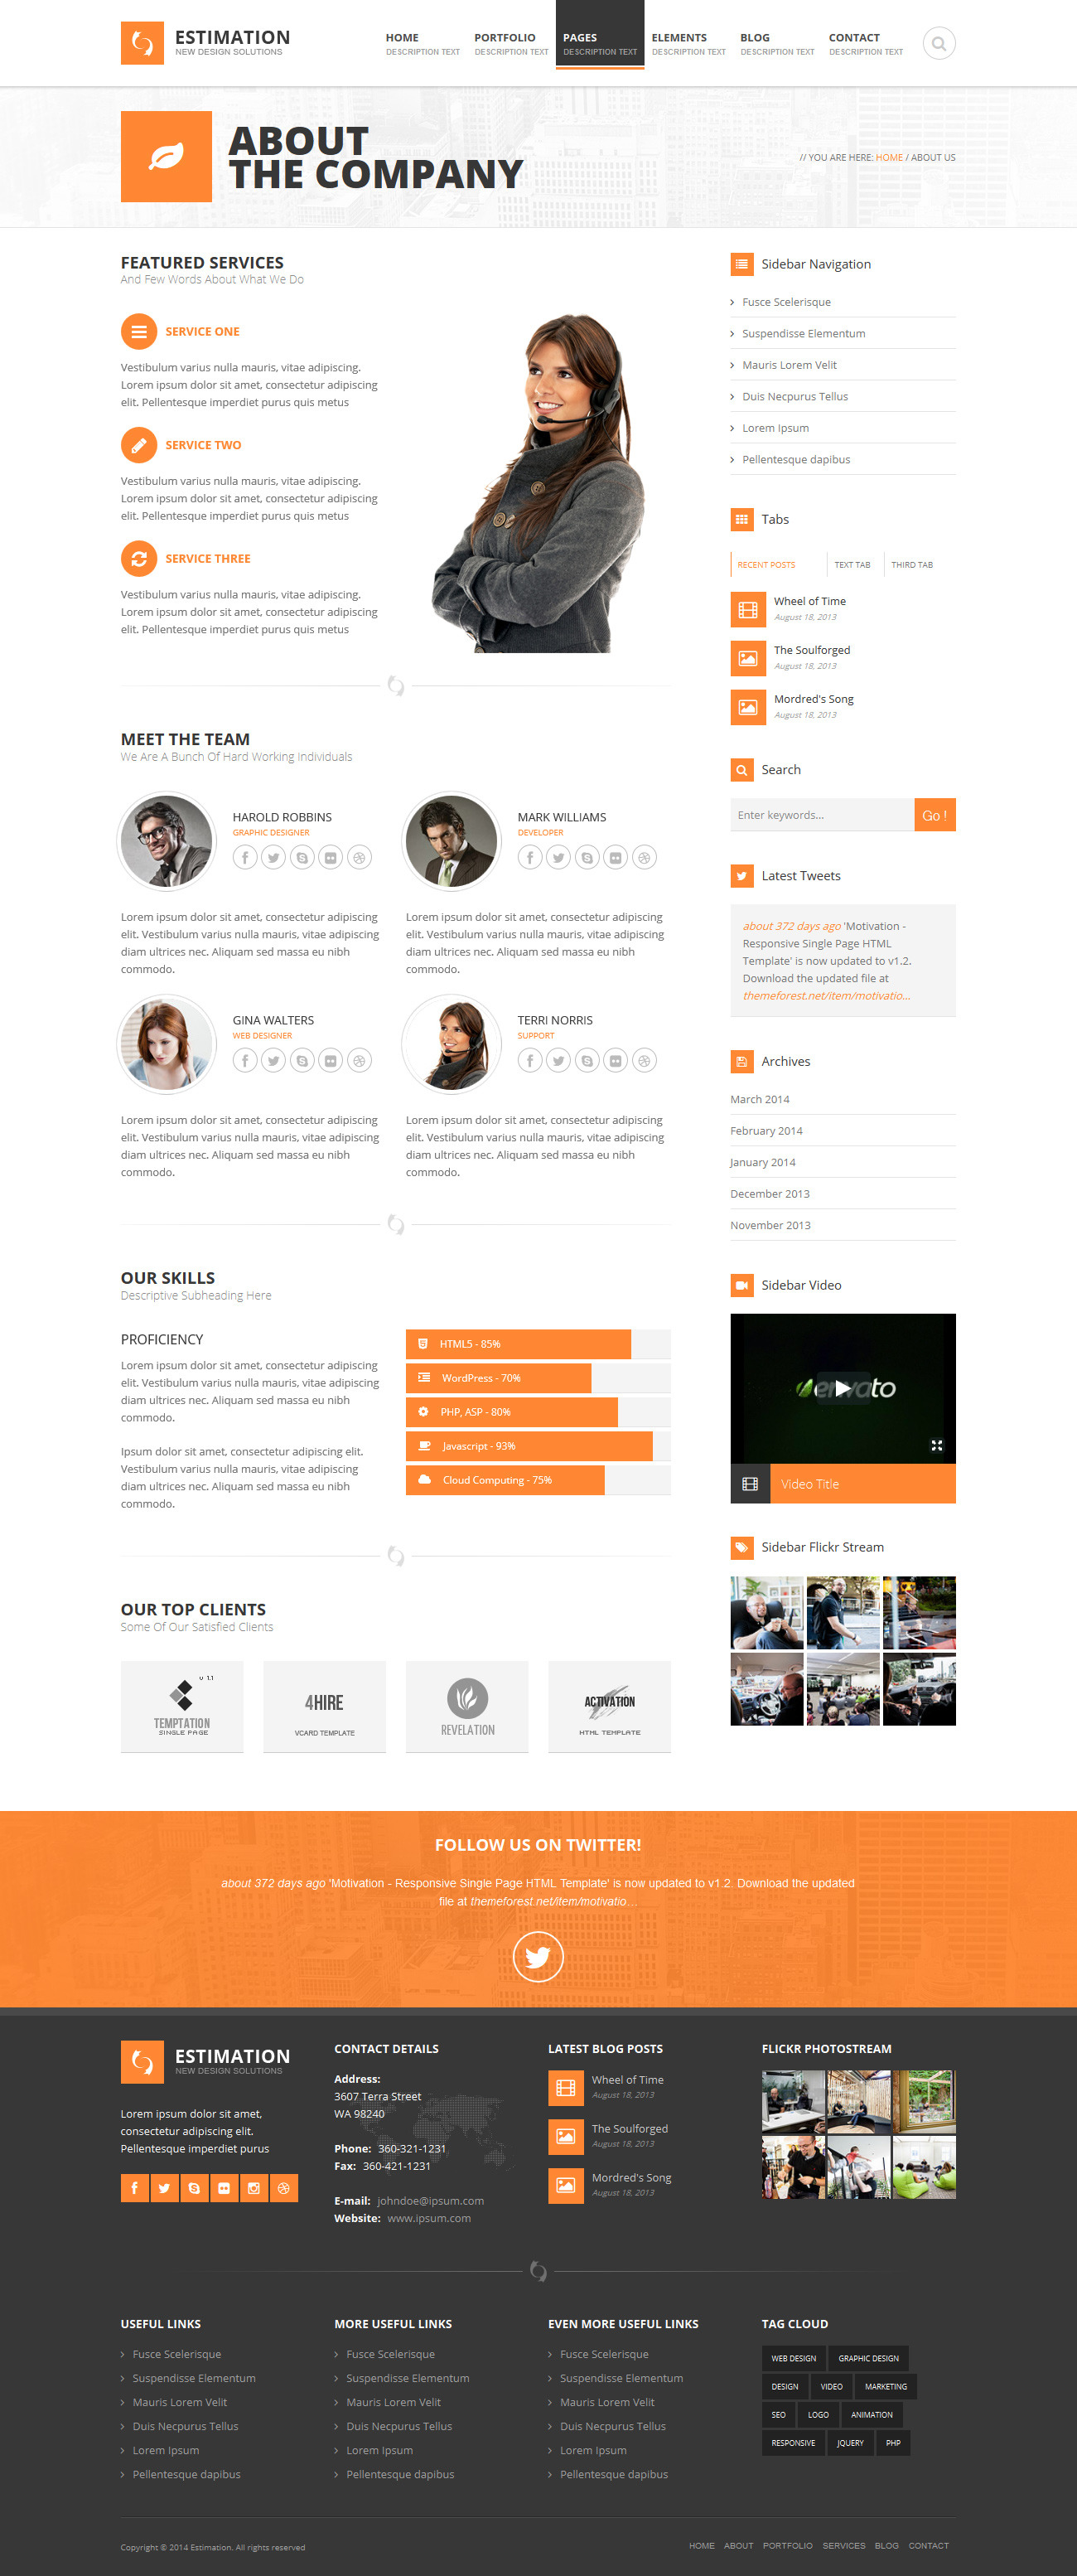 Tolle business html vorlage galerie beispiel wiederaufnahme estimation responsive business html template by hedgehogcreative cheaphphosting Choice Image